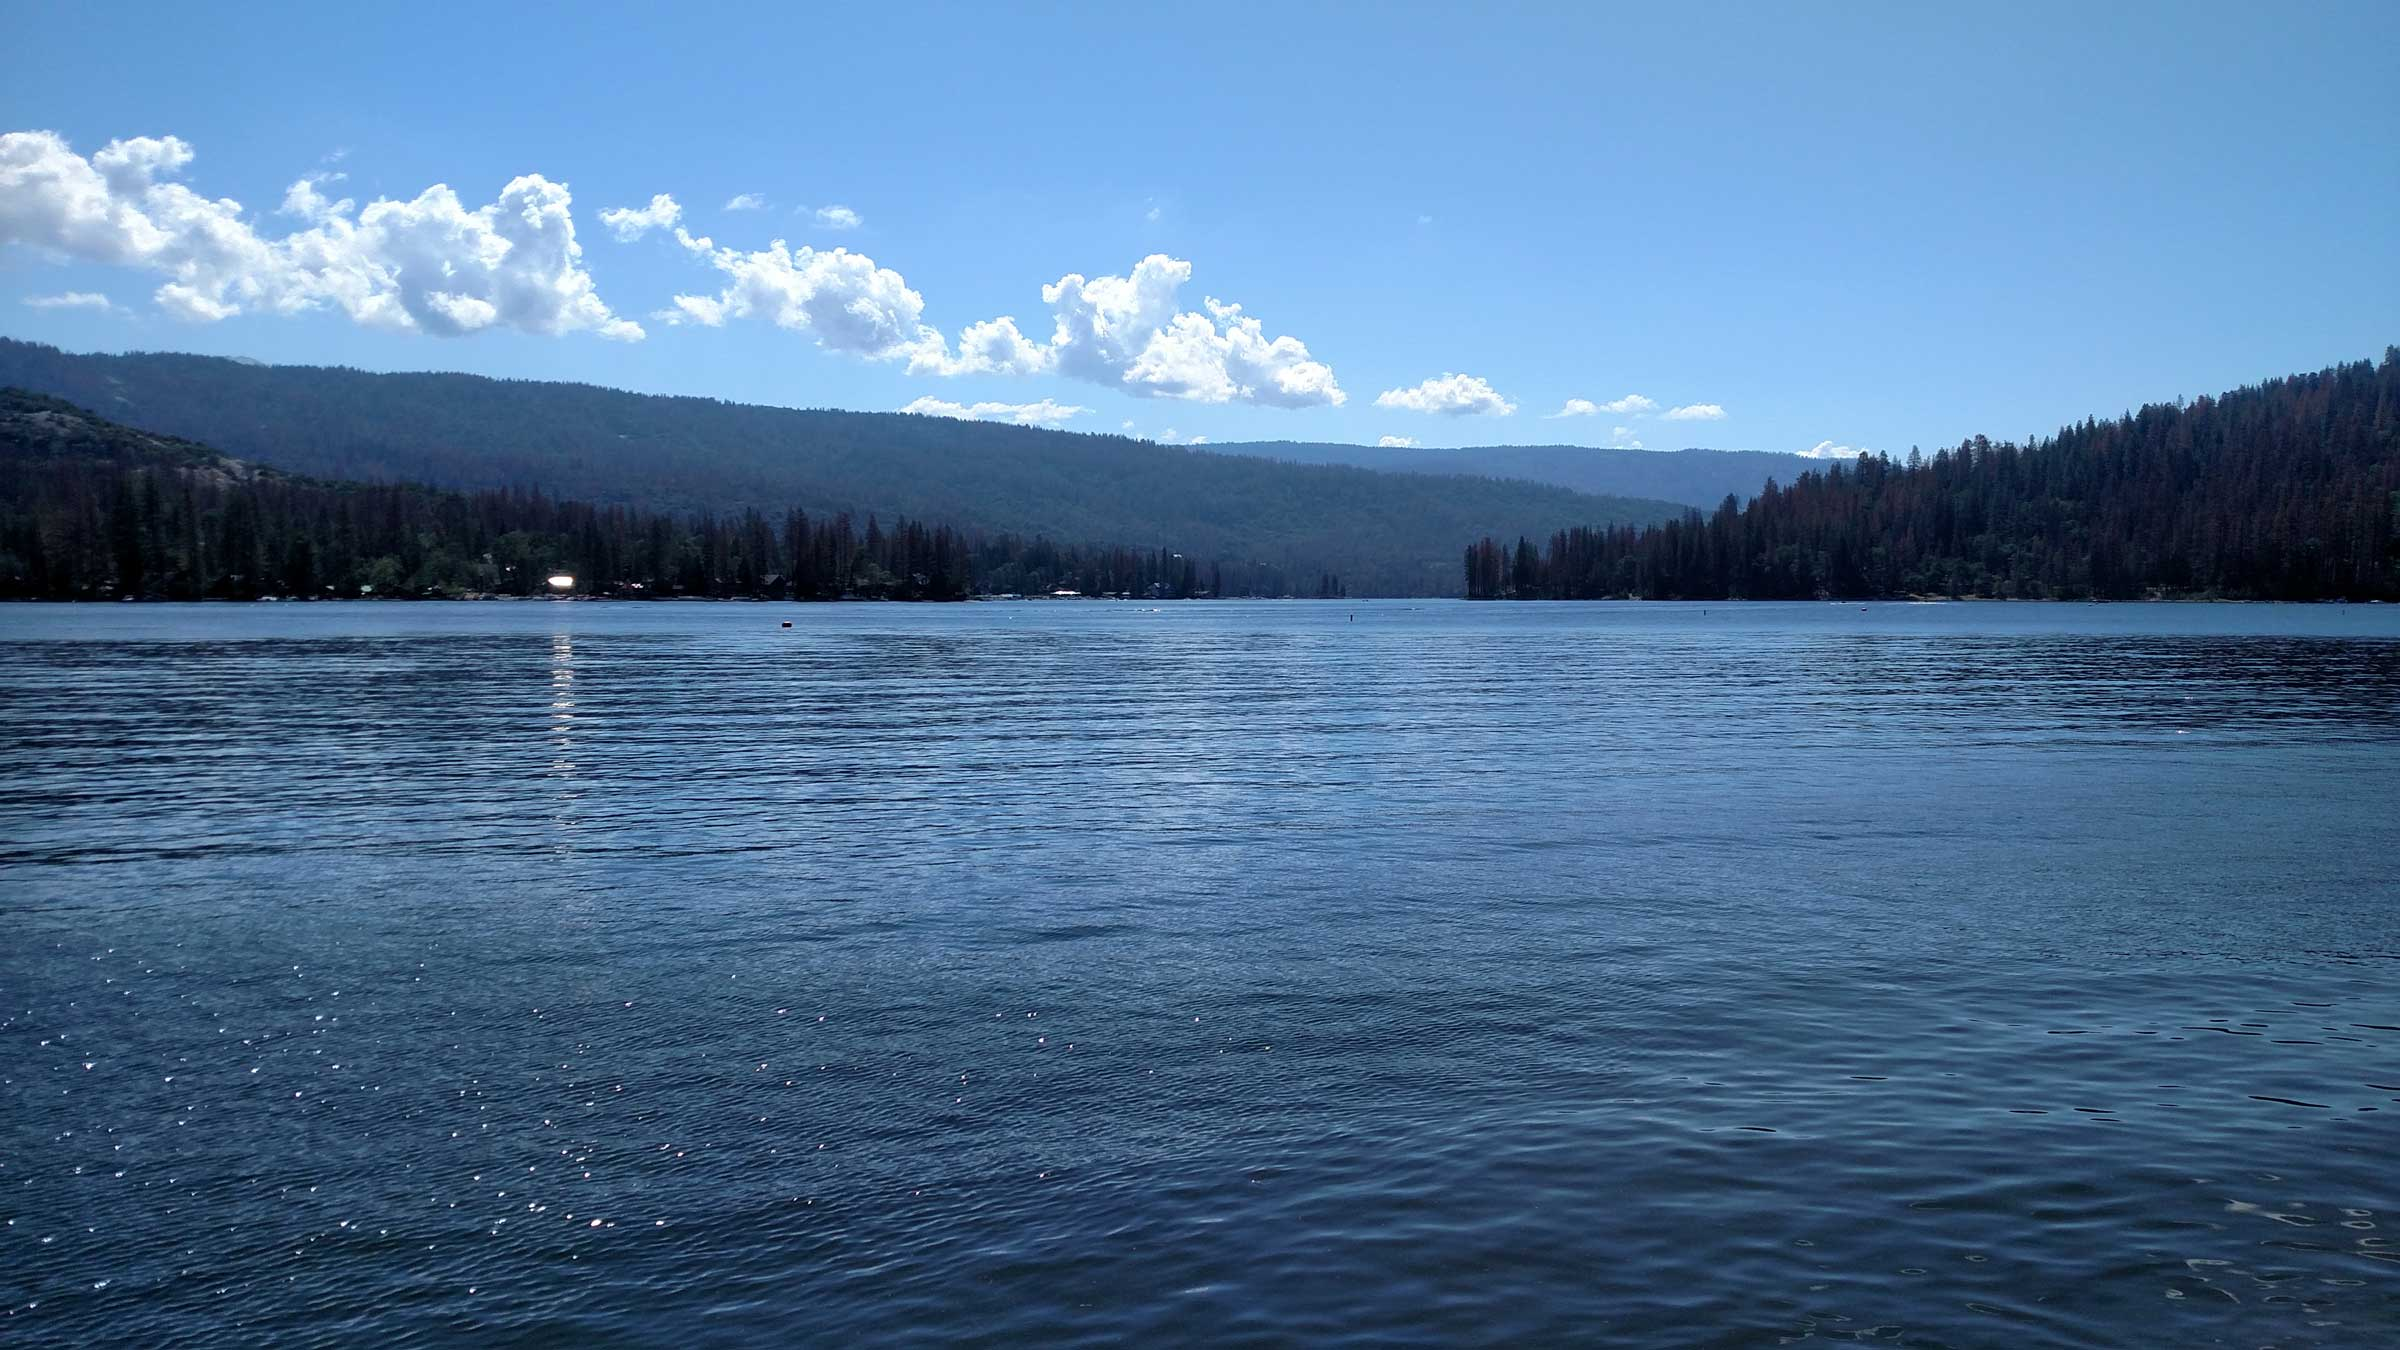 bass lake Fishing opportunities include largemouth bass, yellow perch, black crappie, and pumpkinseed sunfish bass lake has a primitive wdfw boat ramp on the east shore, just off highway sr-169.